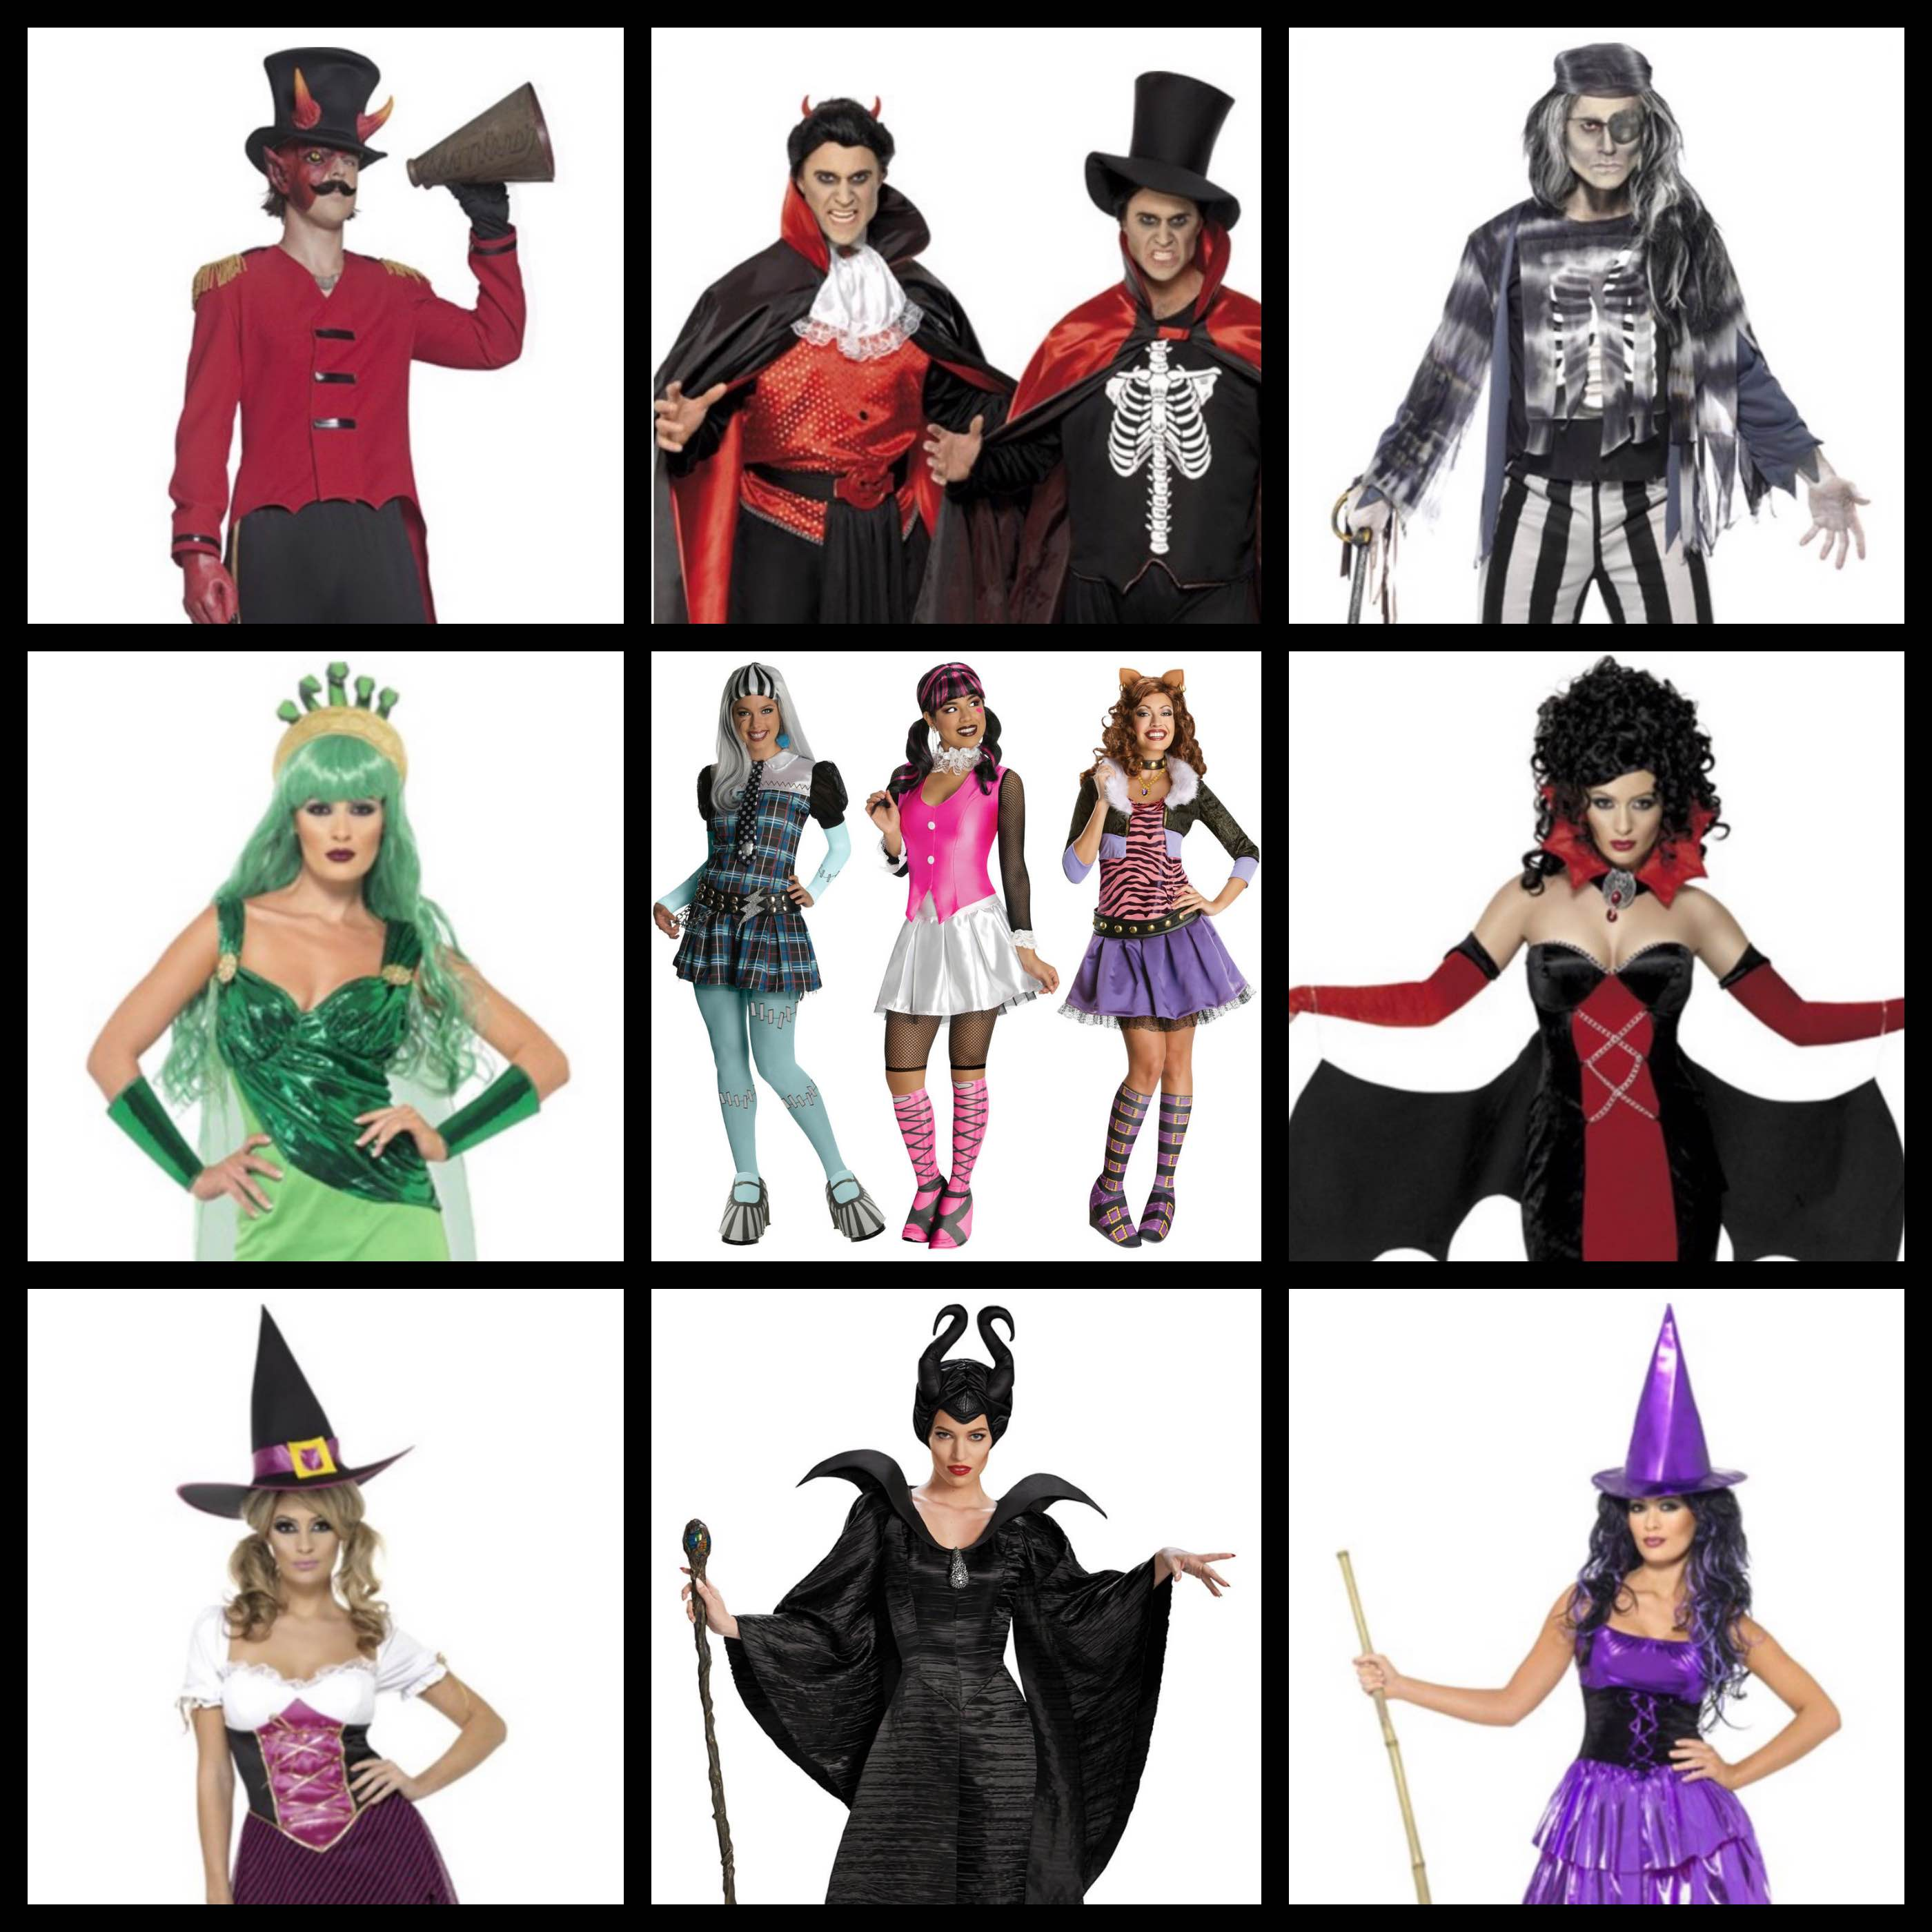 Scary Characters and Halloween - Super Star Parties